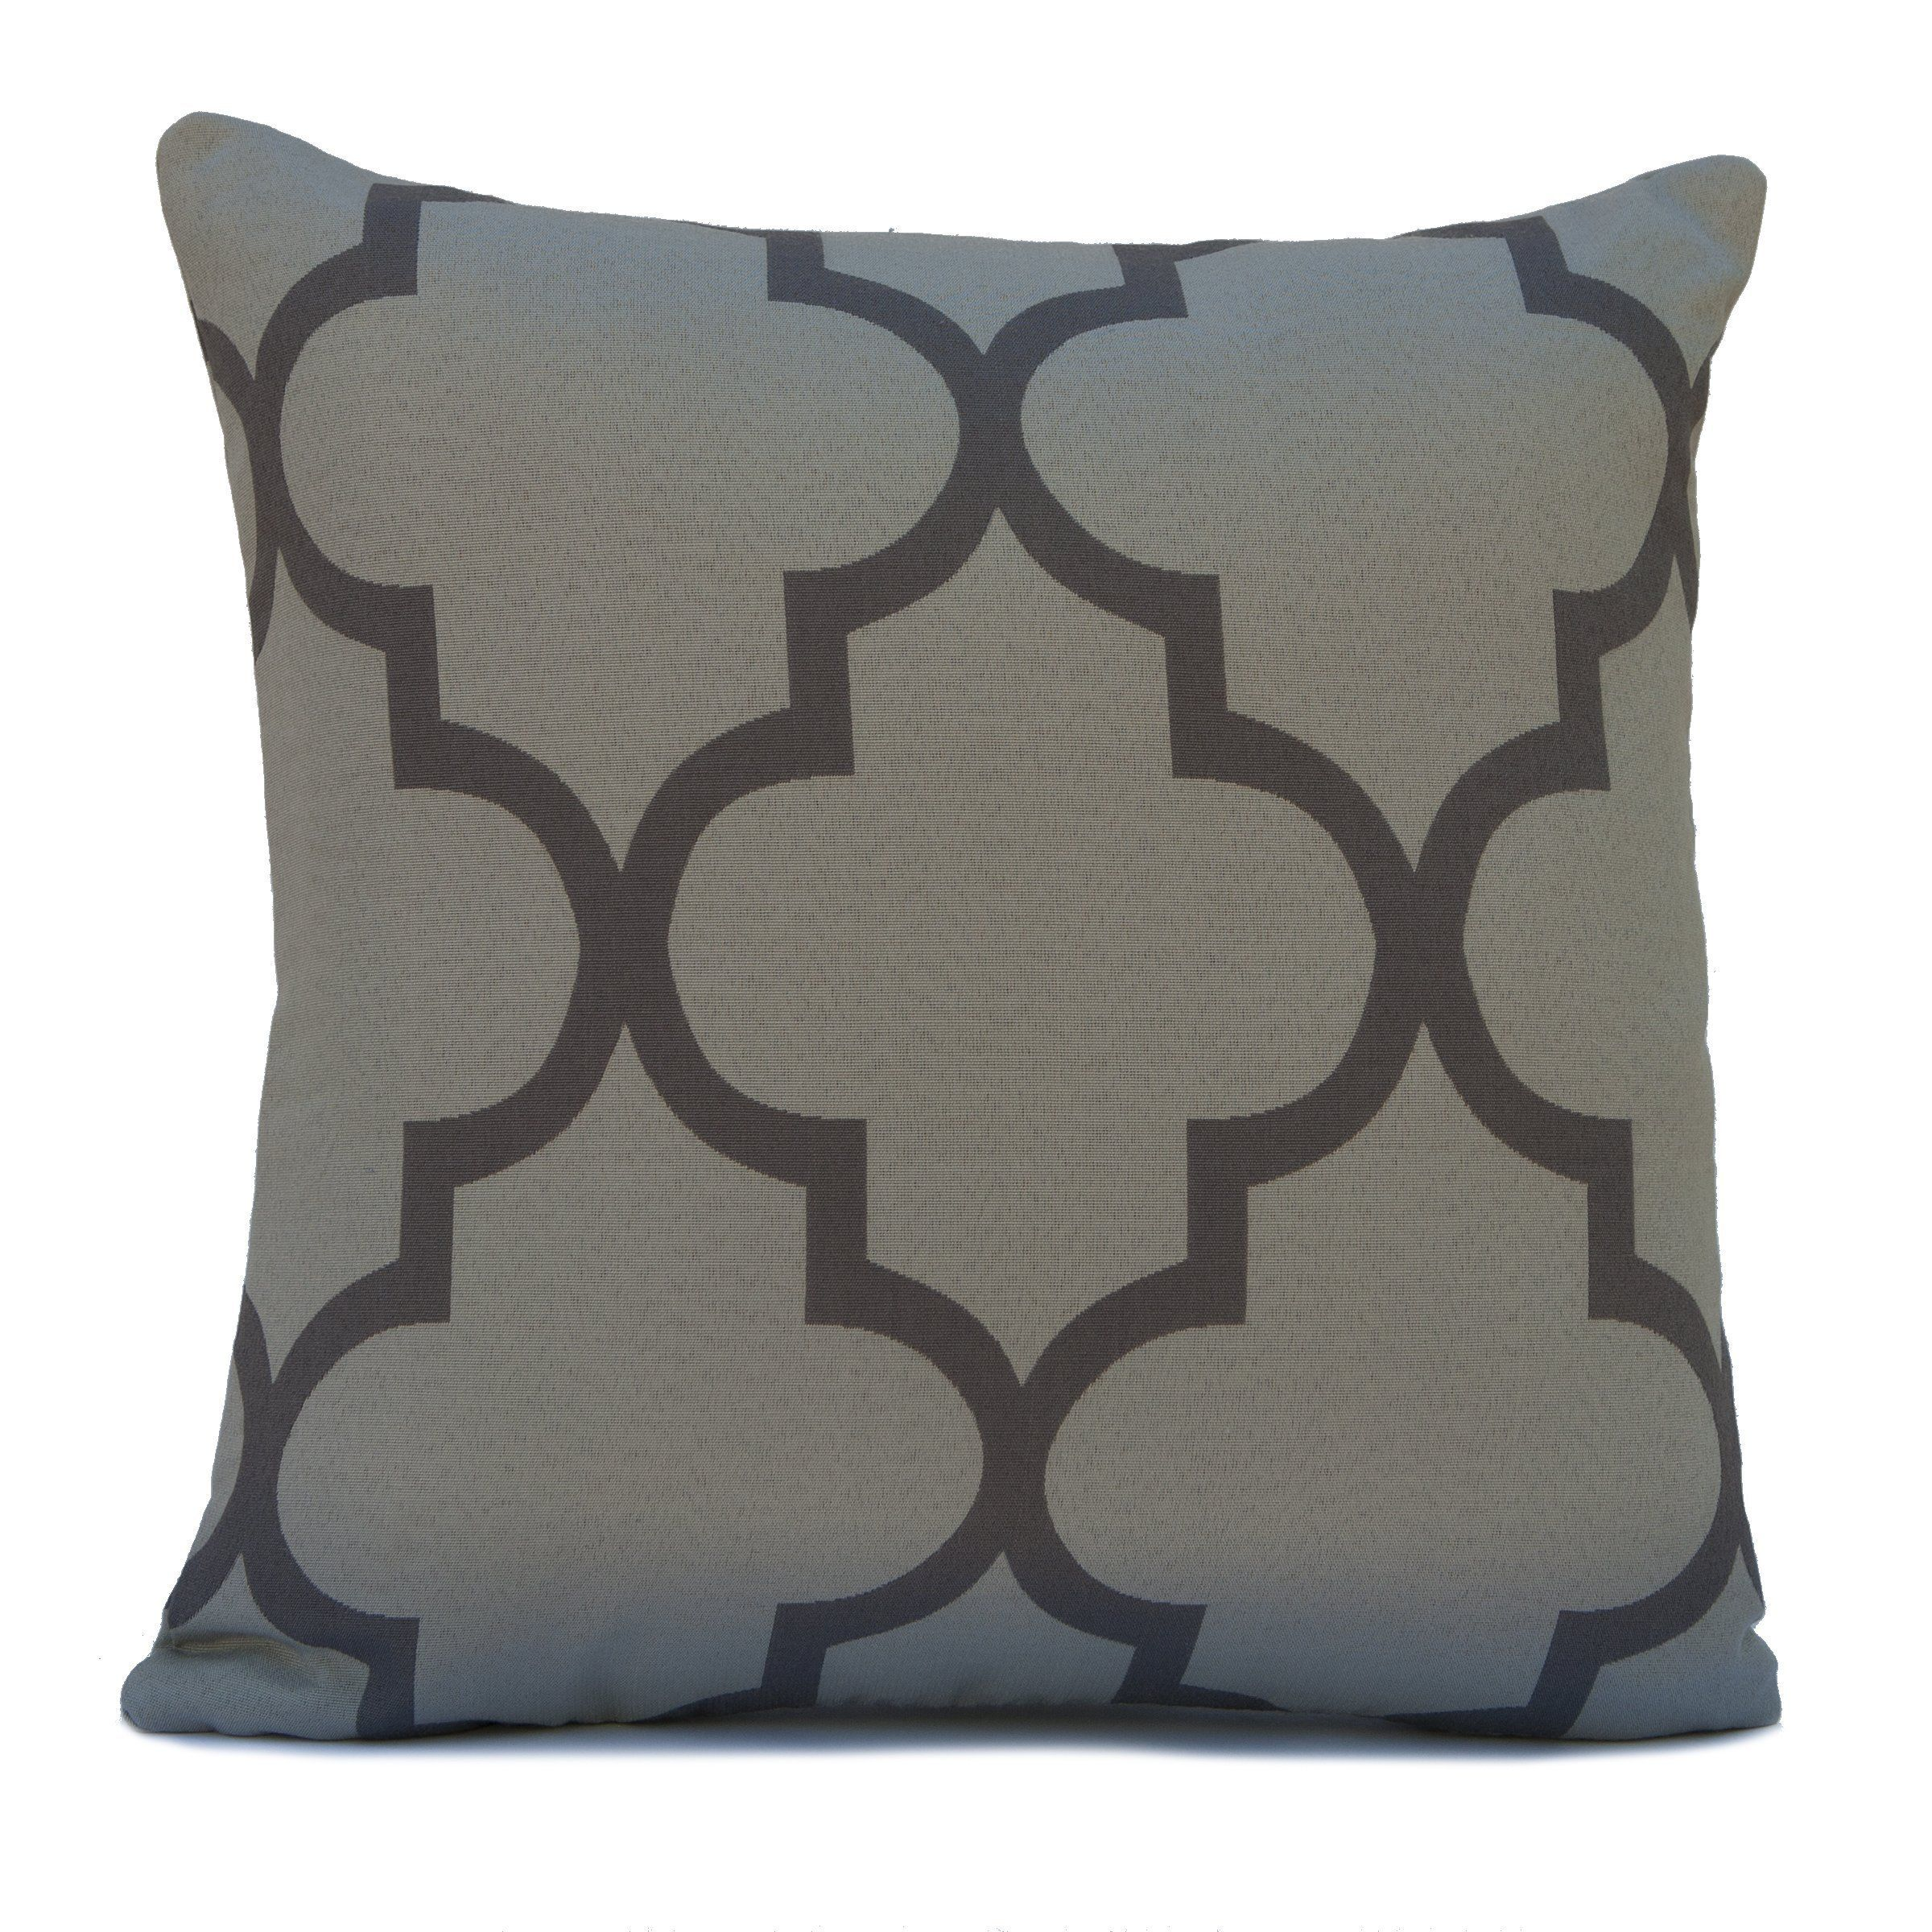 Light and dark grey cotton blend decorative throw pillow cover with